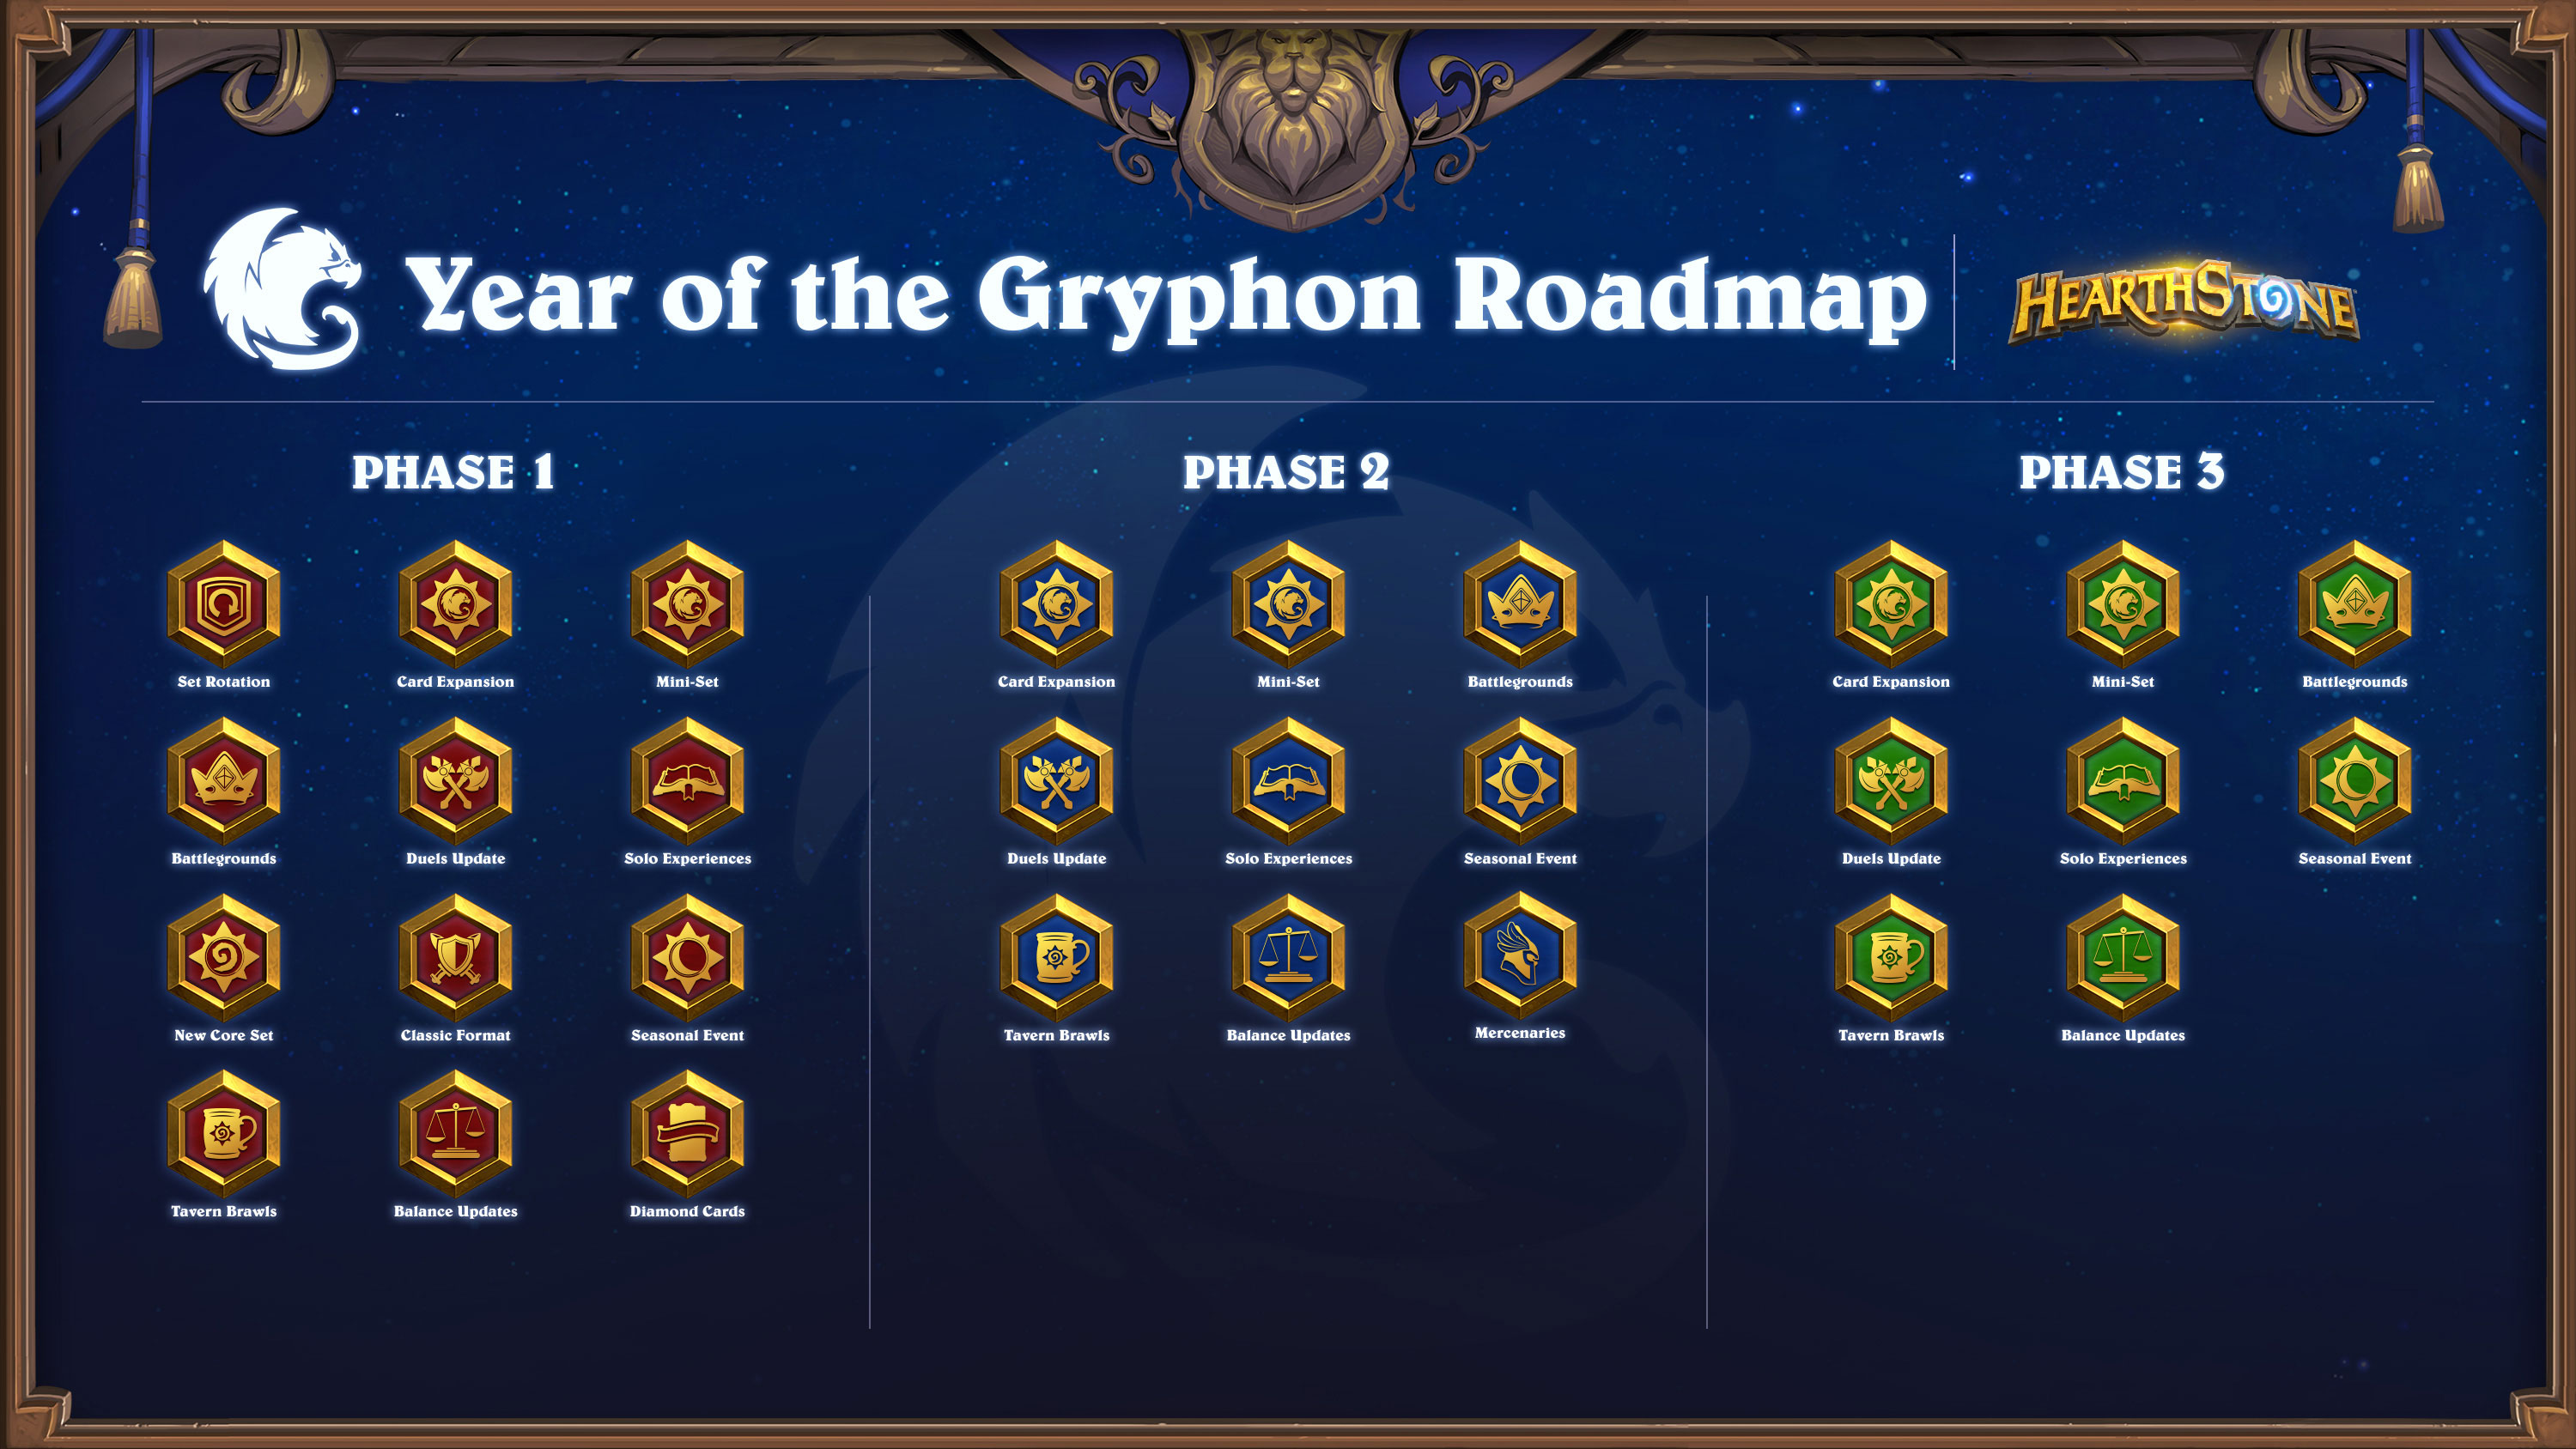 Year of the Gryphon Roadmap!